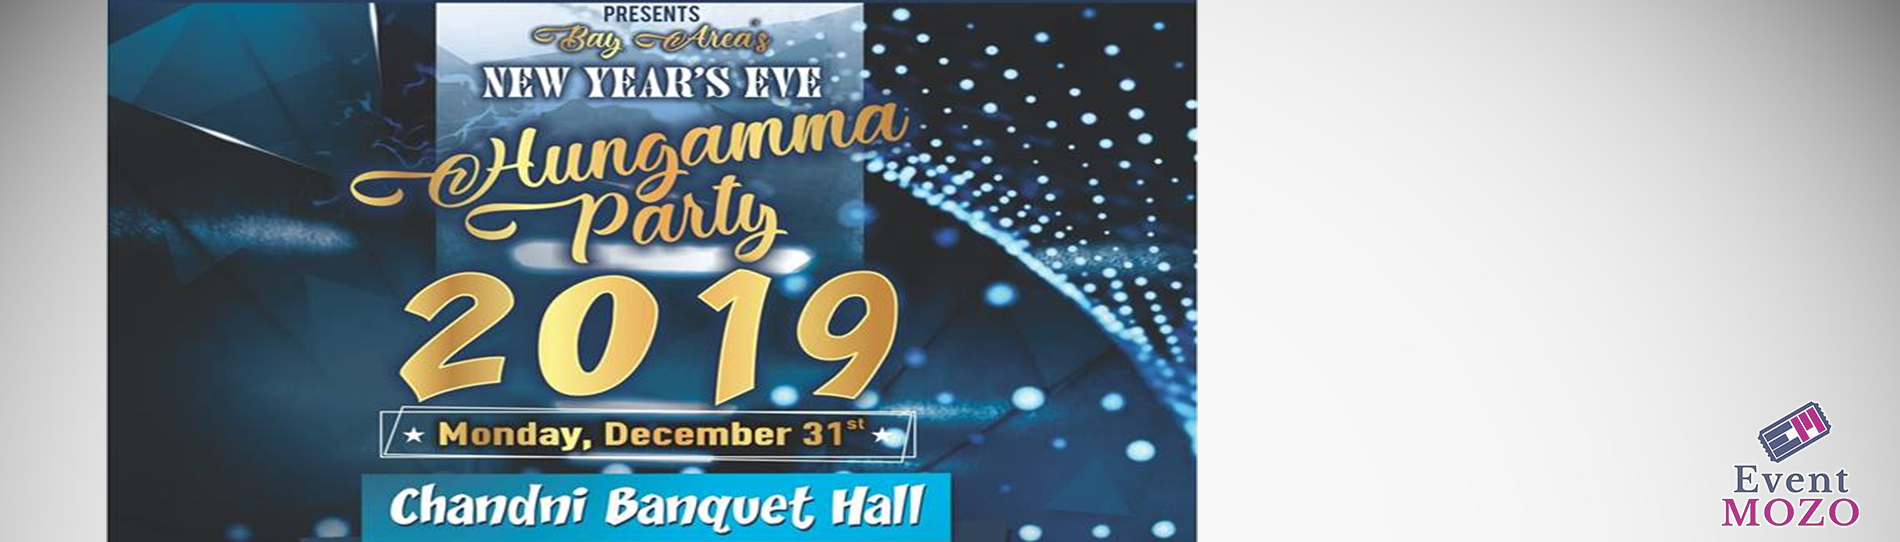 EventMozo Din Mani Presents 2018 New Year's Eve